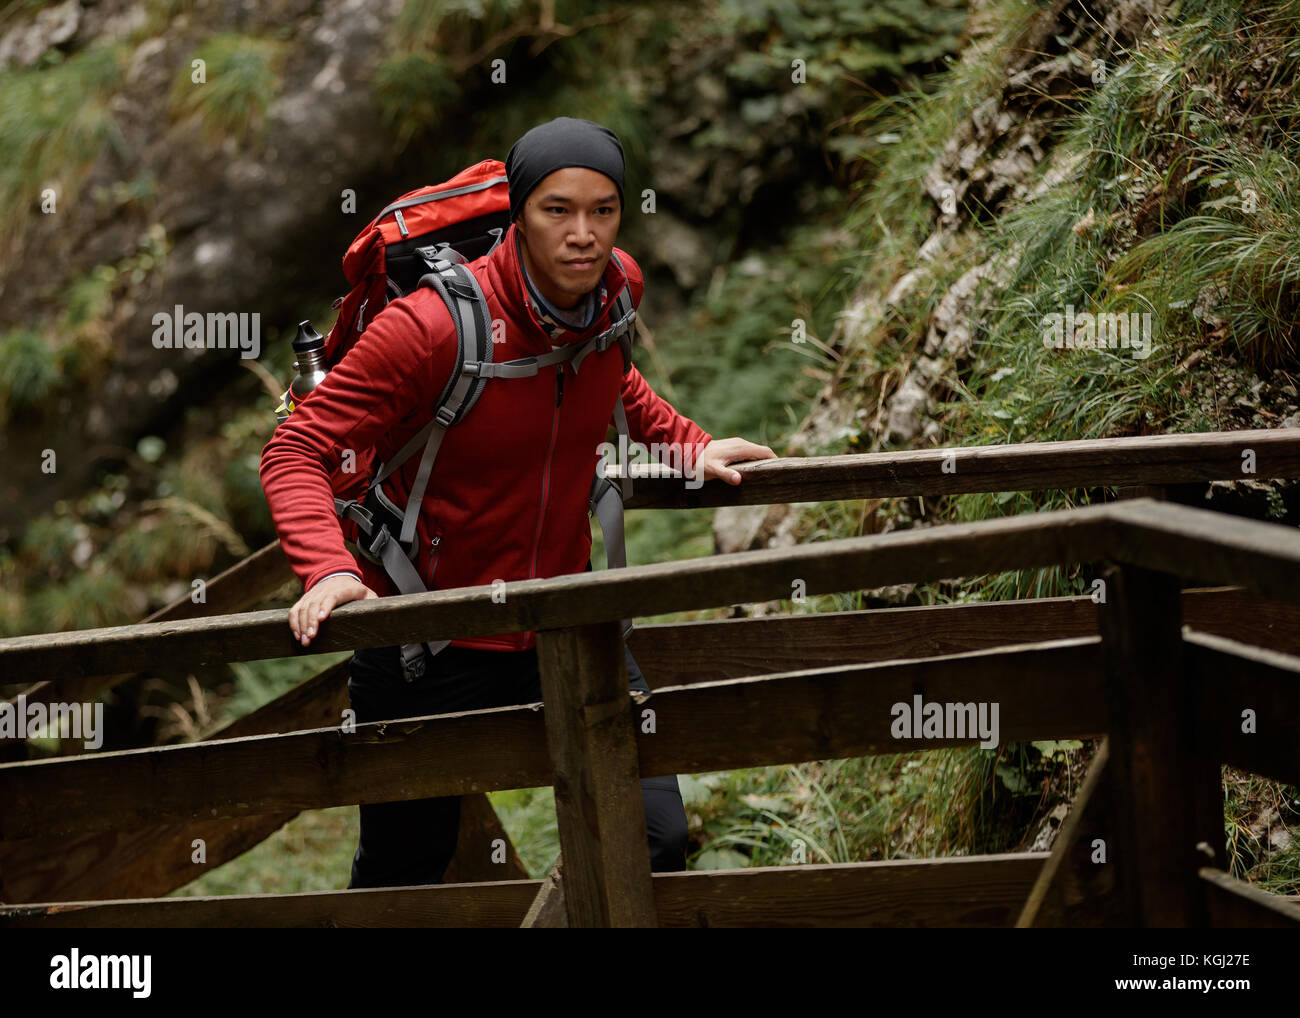 A man hiking along a trail - Stock Image